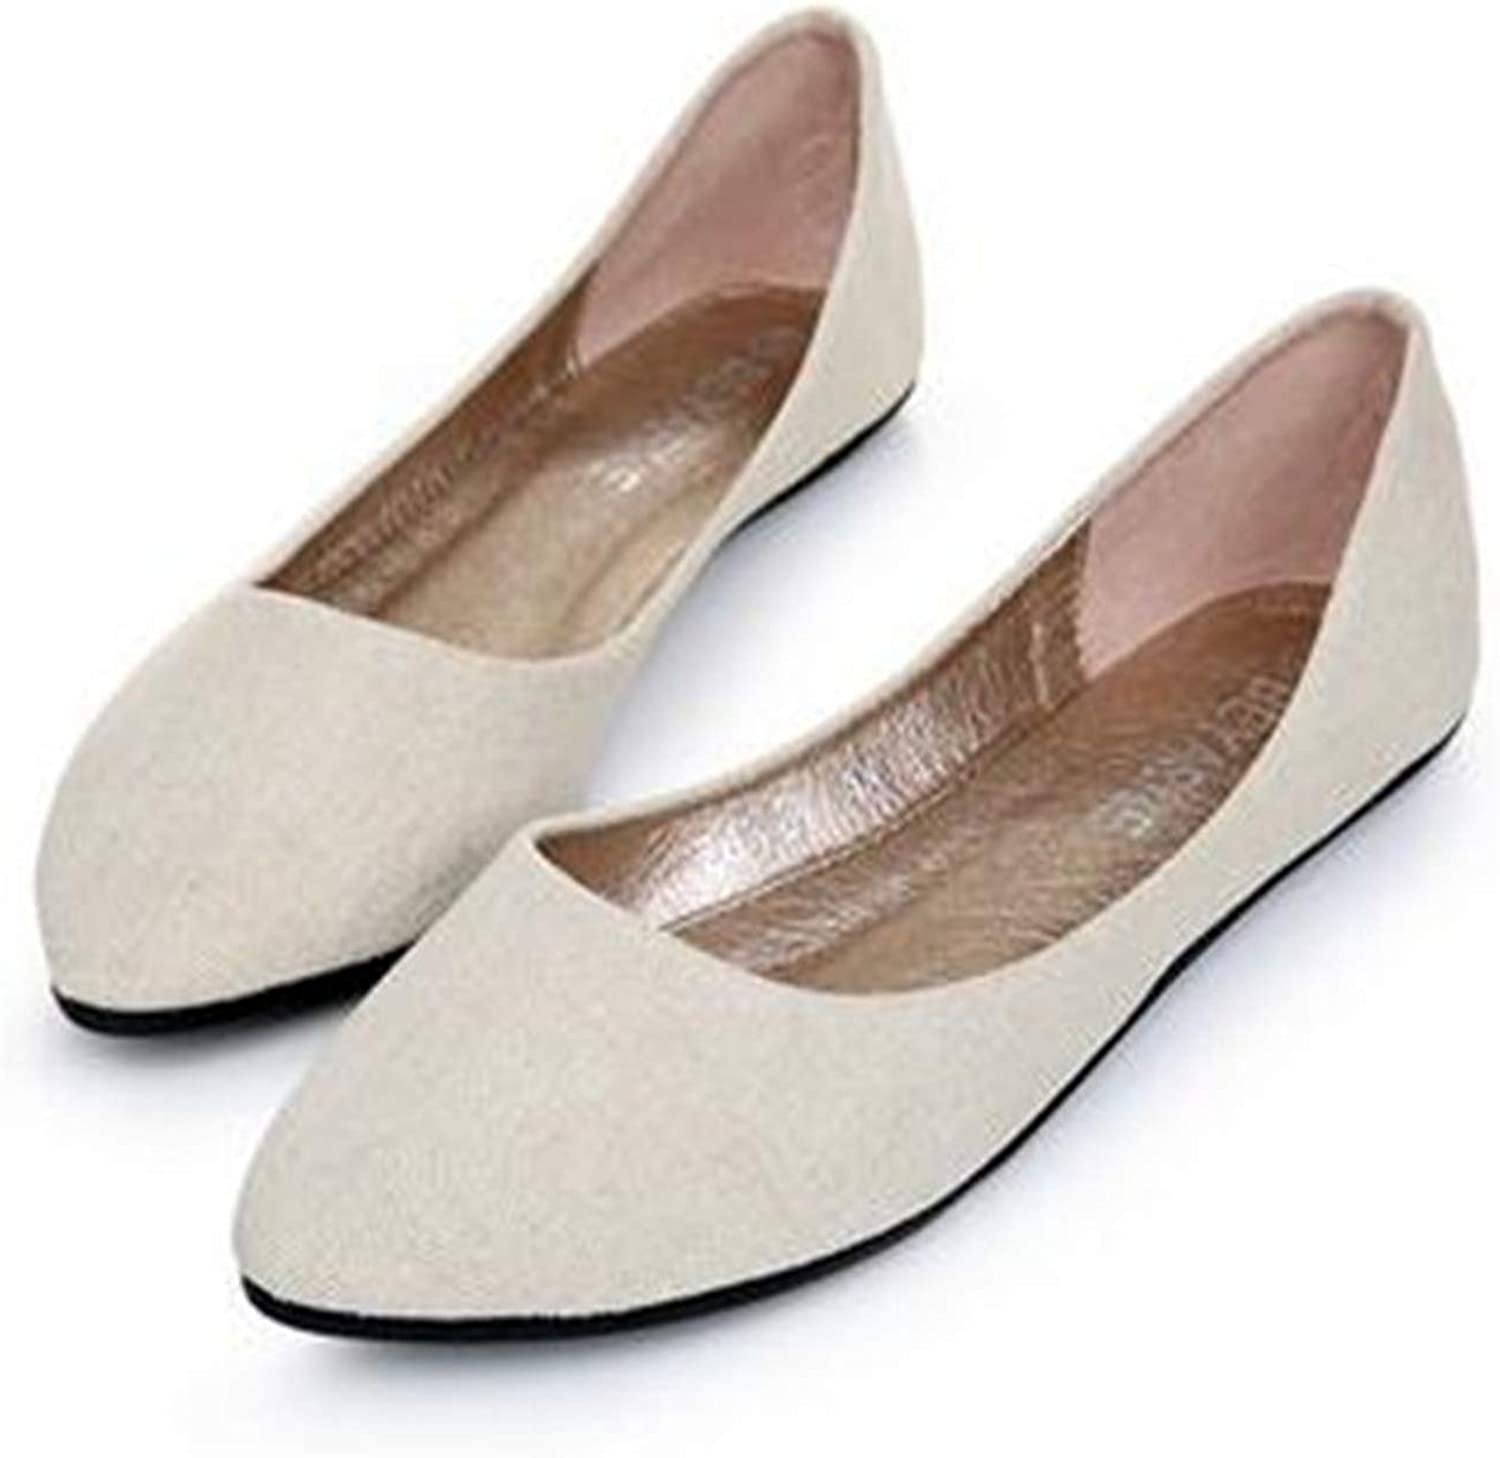 Women Soft Denim Flats bluee Fashion Basic Pointy Toe Ballerina Ballet Flat Slip On Office shoes